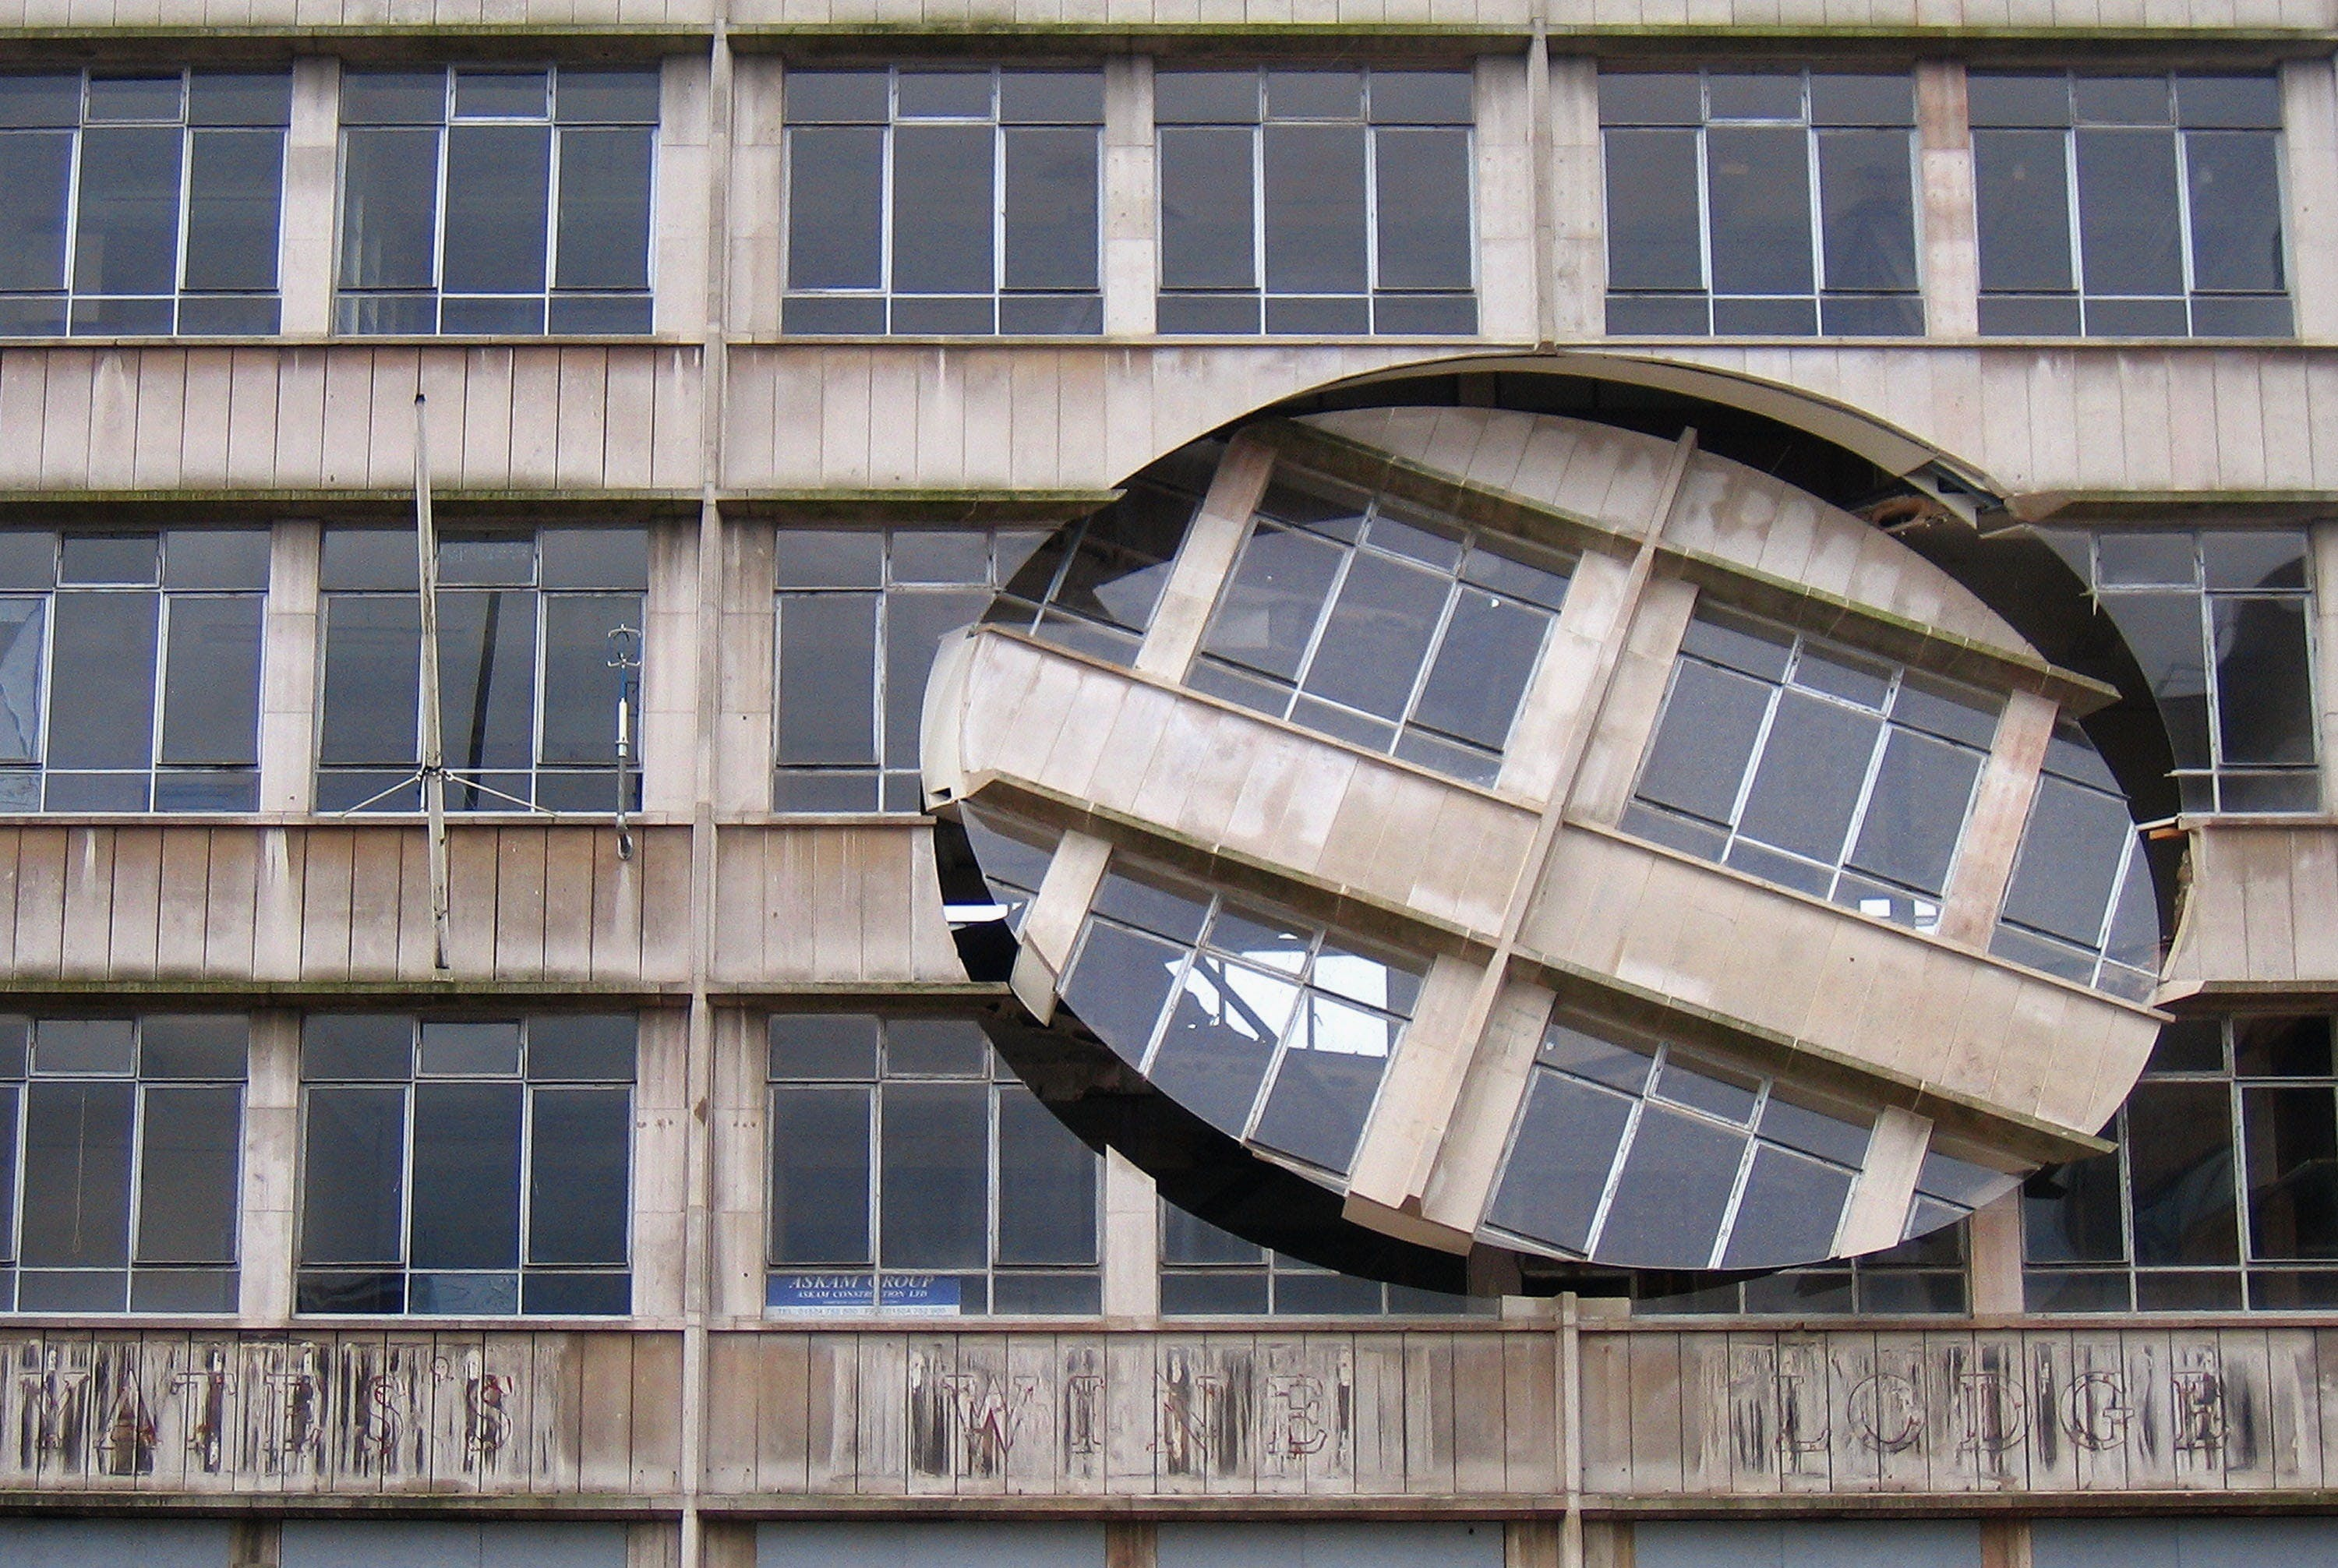 Turning The Place Over (2007), Richard Wilson. The work was built into the condemned Cross Keys House in Moorfields as part of the Capital of Culture for 2008, in June 2007 in Liverpool, England.